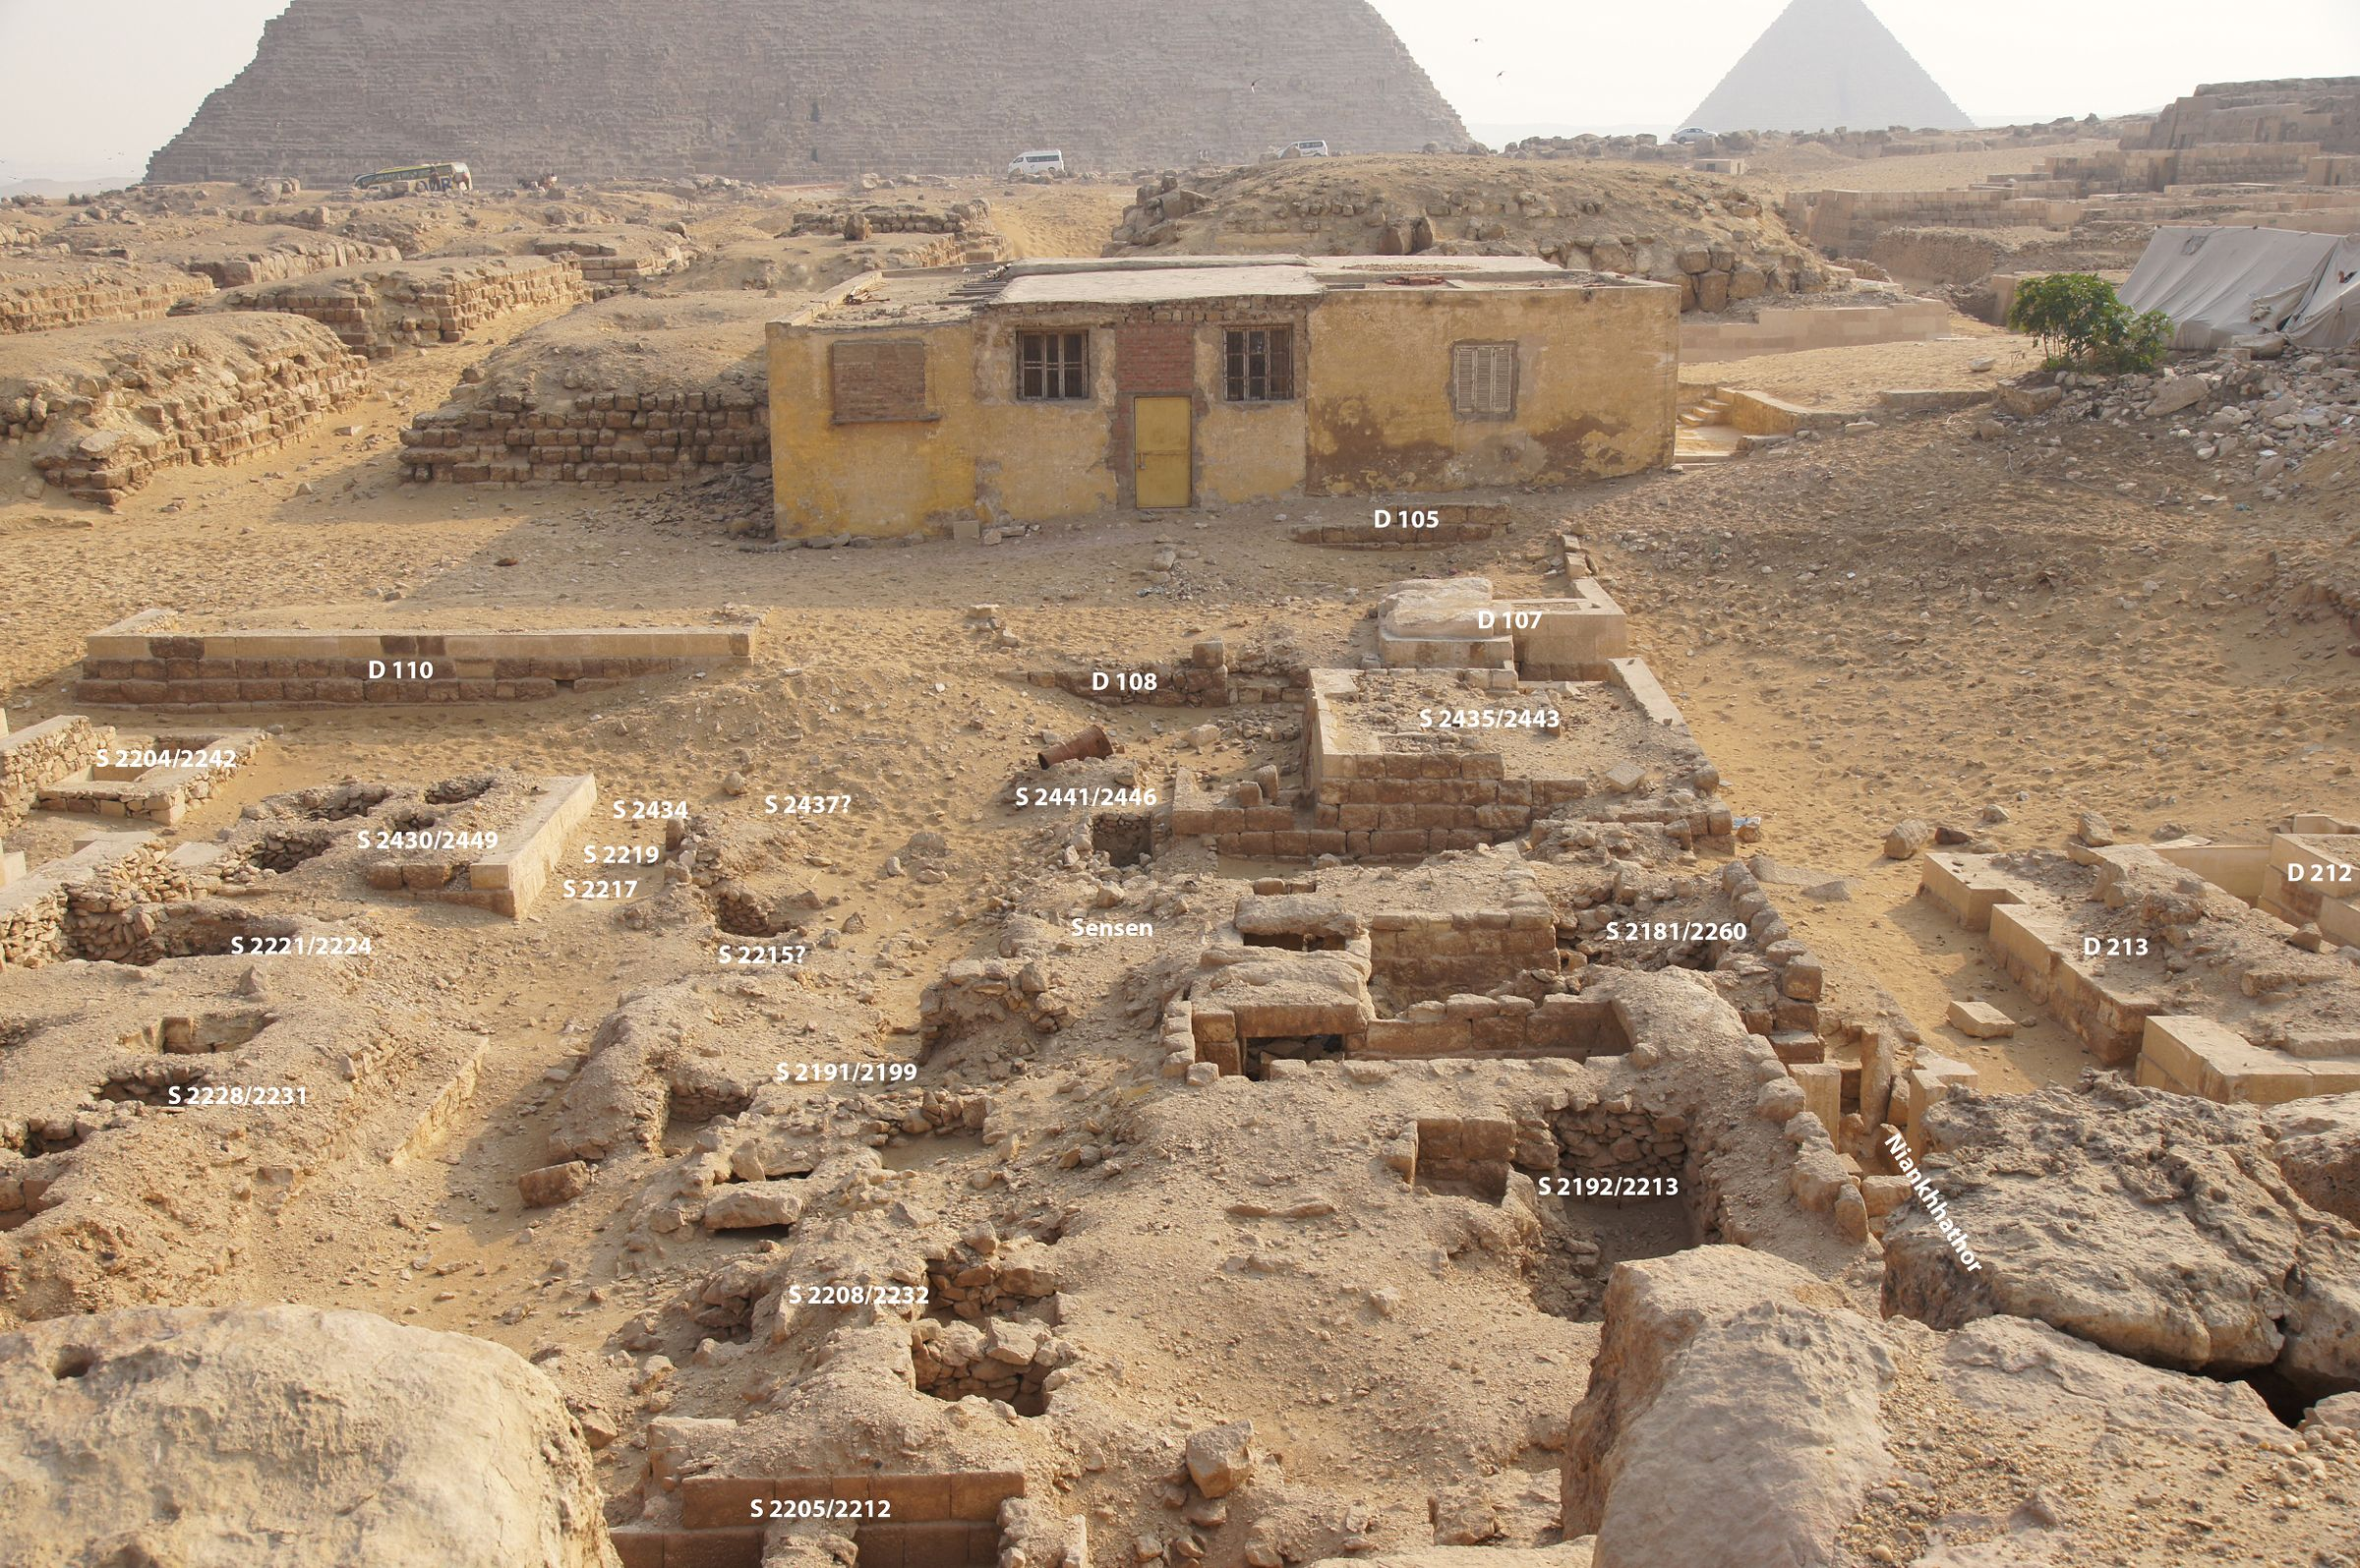 Western Cemetery: Site: Giza; View: S 2204/2242, S 2228/2231, S 2221/2224, S 2430/2449, S 2217, S 2219, S 2434, D 110, S 2205/2212, S 2208/2232, S 2191/2199, S 2215?, S 2437?, Sensen, S 2441/2446, D 108, S 2192/2213, S 2181/2260, S 2435/2443, D 107, D 105, Niankhhathor, D